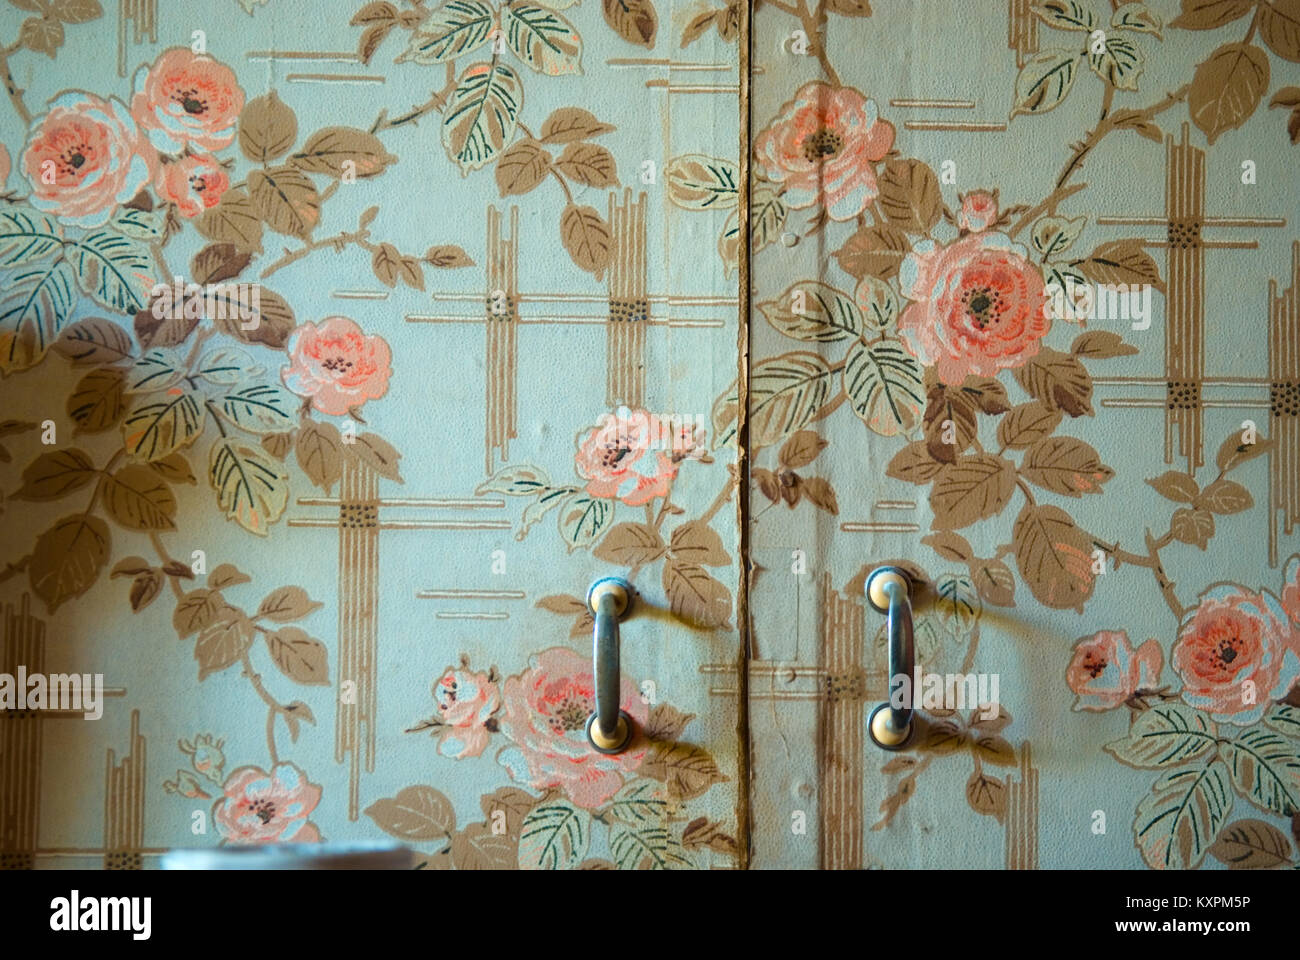 Close Up Of Wardrobe Doorl With Old Wallpaper From 1920s In A House Southern France